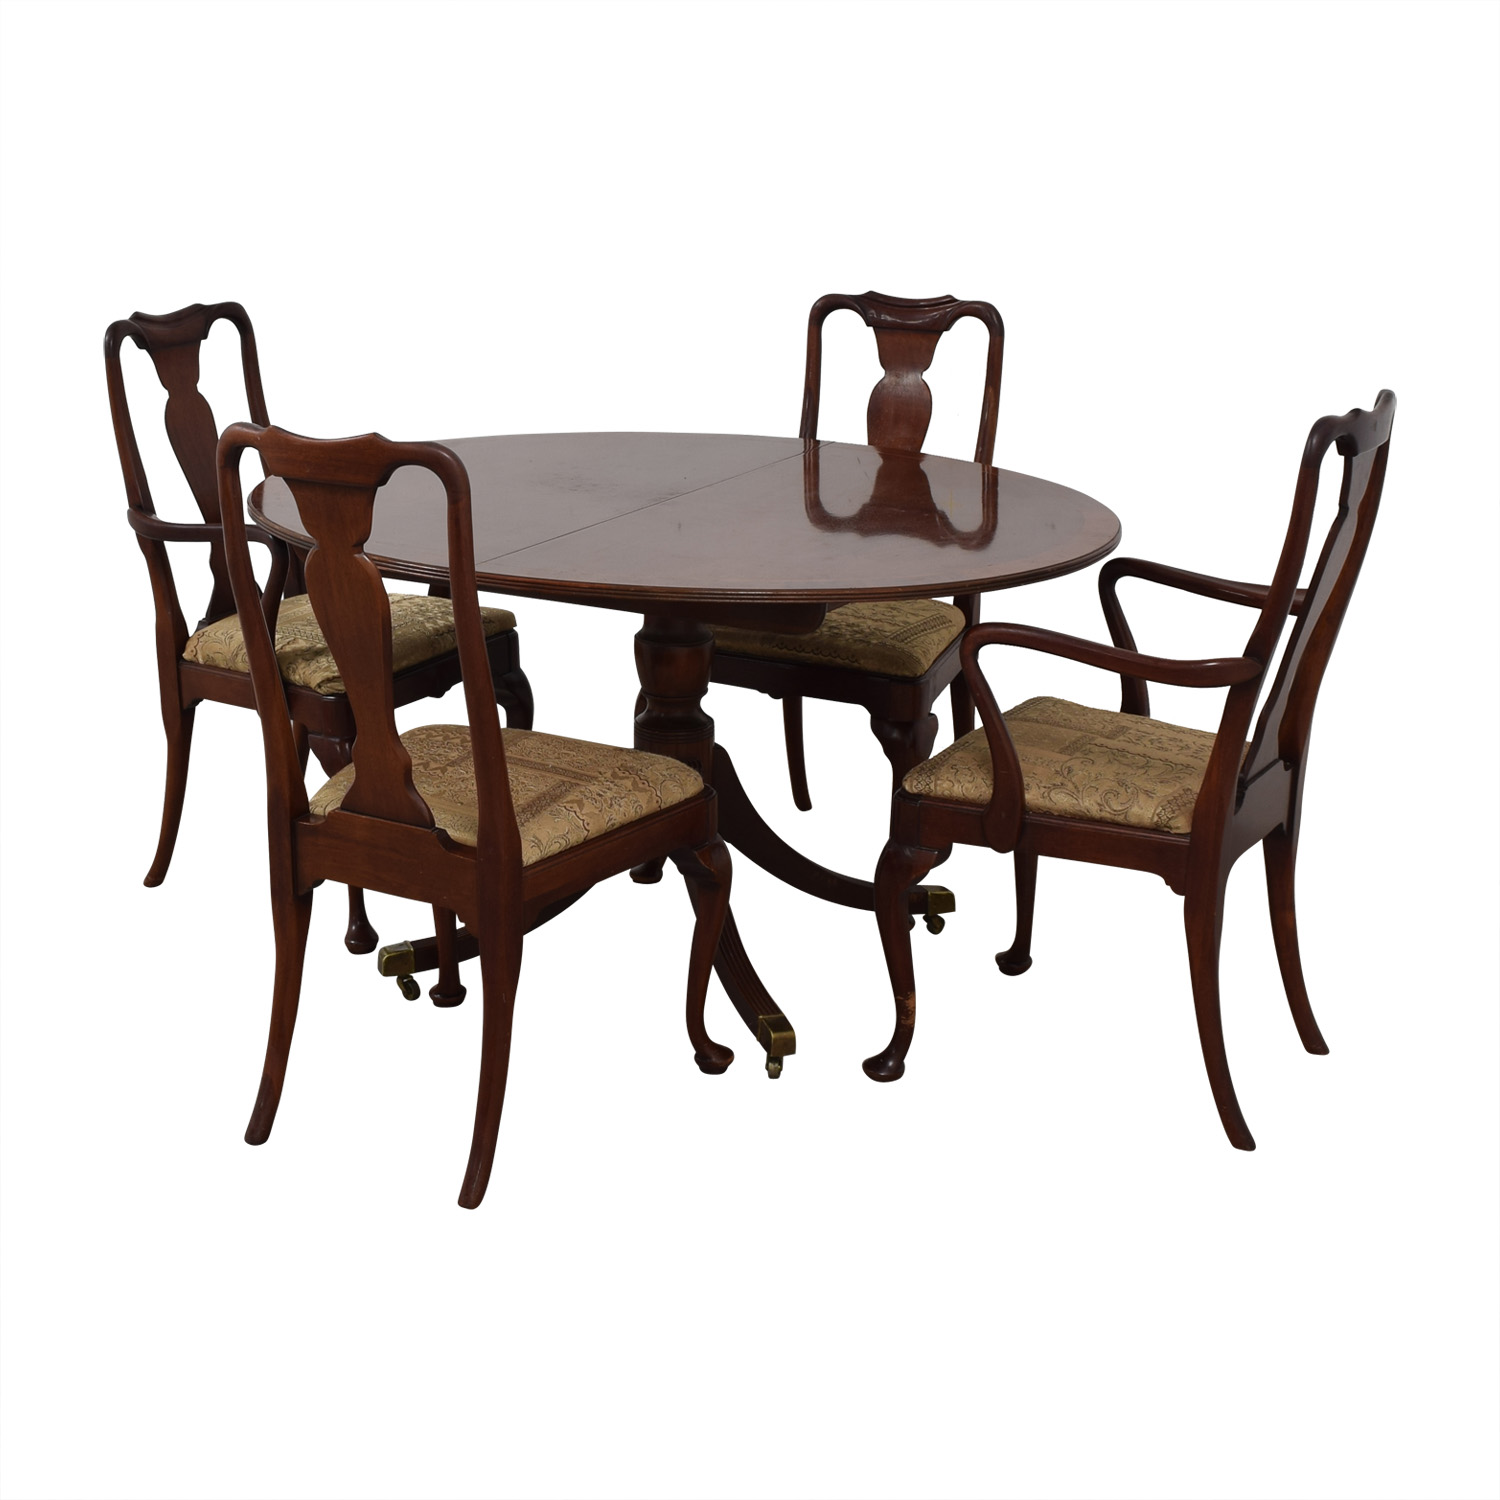 Baker Historic Charleston Reproduction Extendable Dining Table wooden